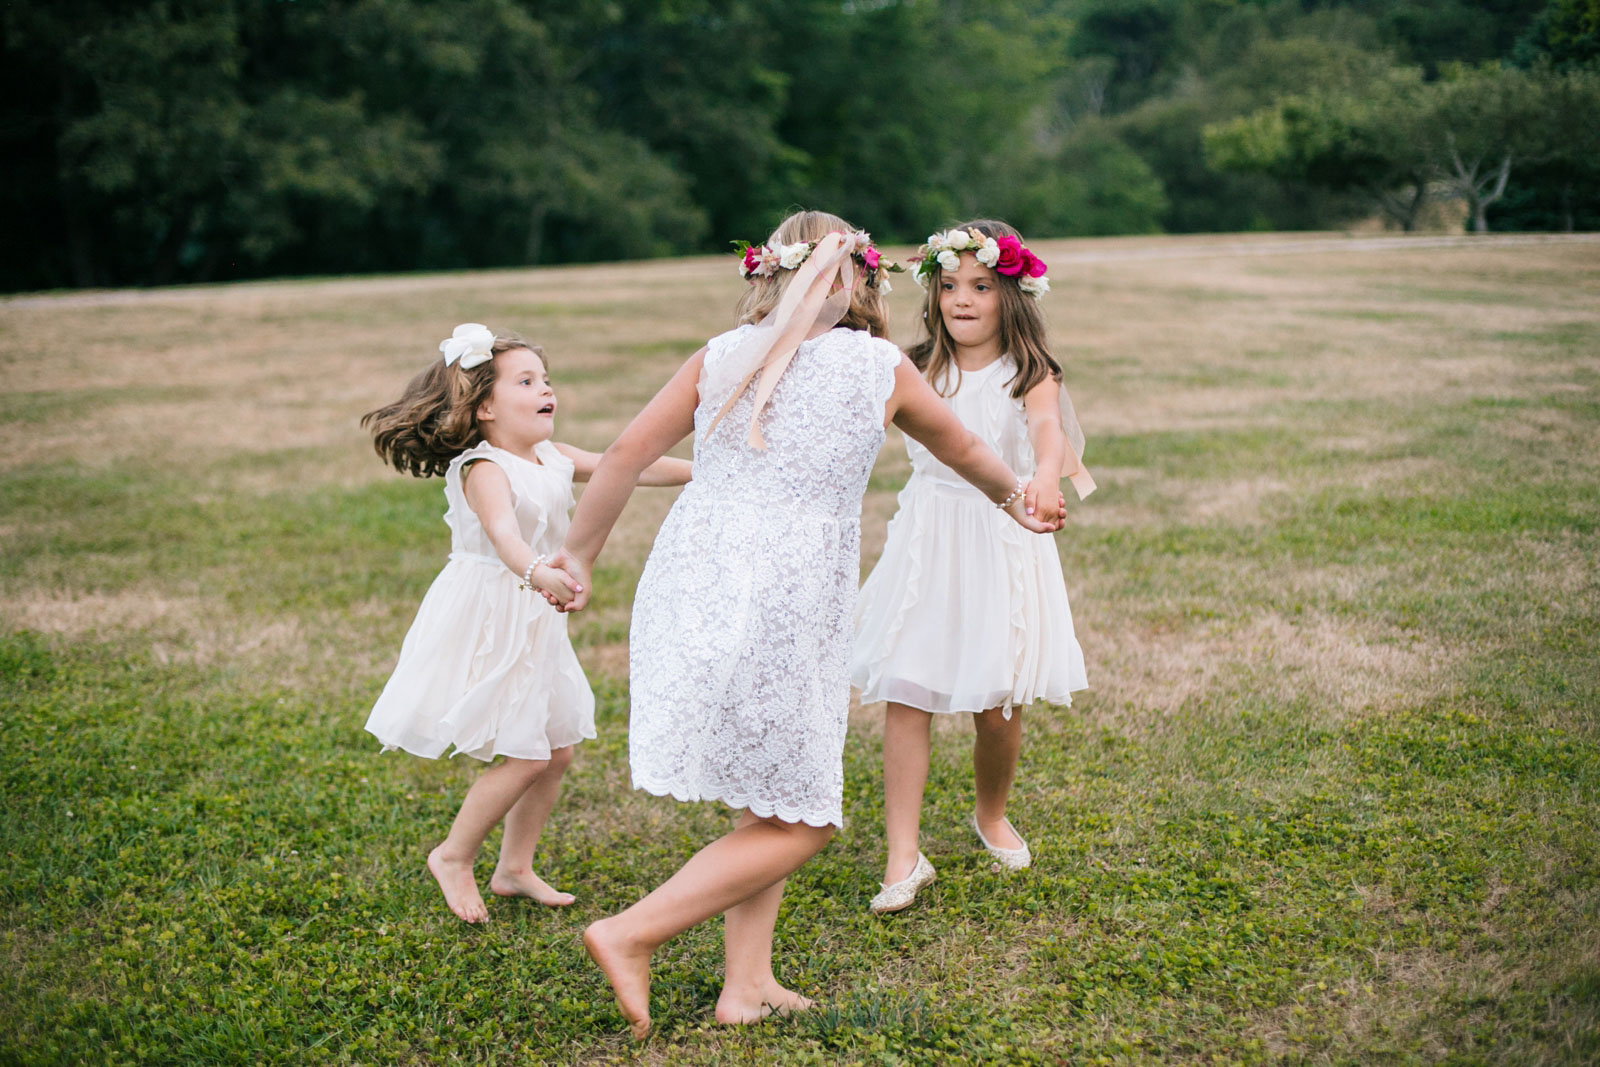 Flower girls in white dresses and flower crowns playing on the grass during wedding reception.